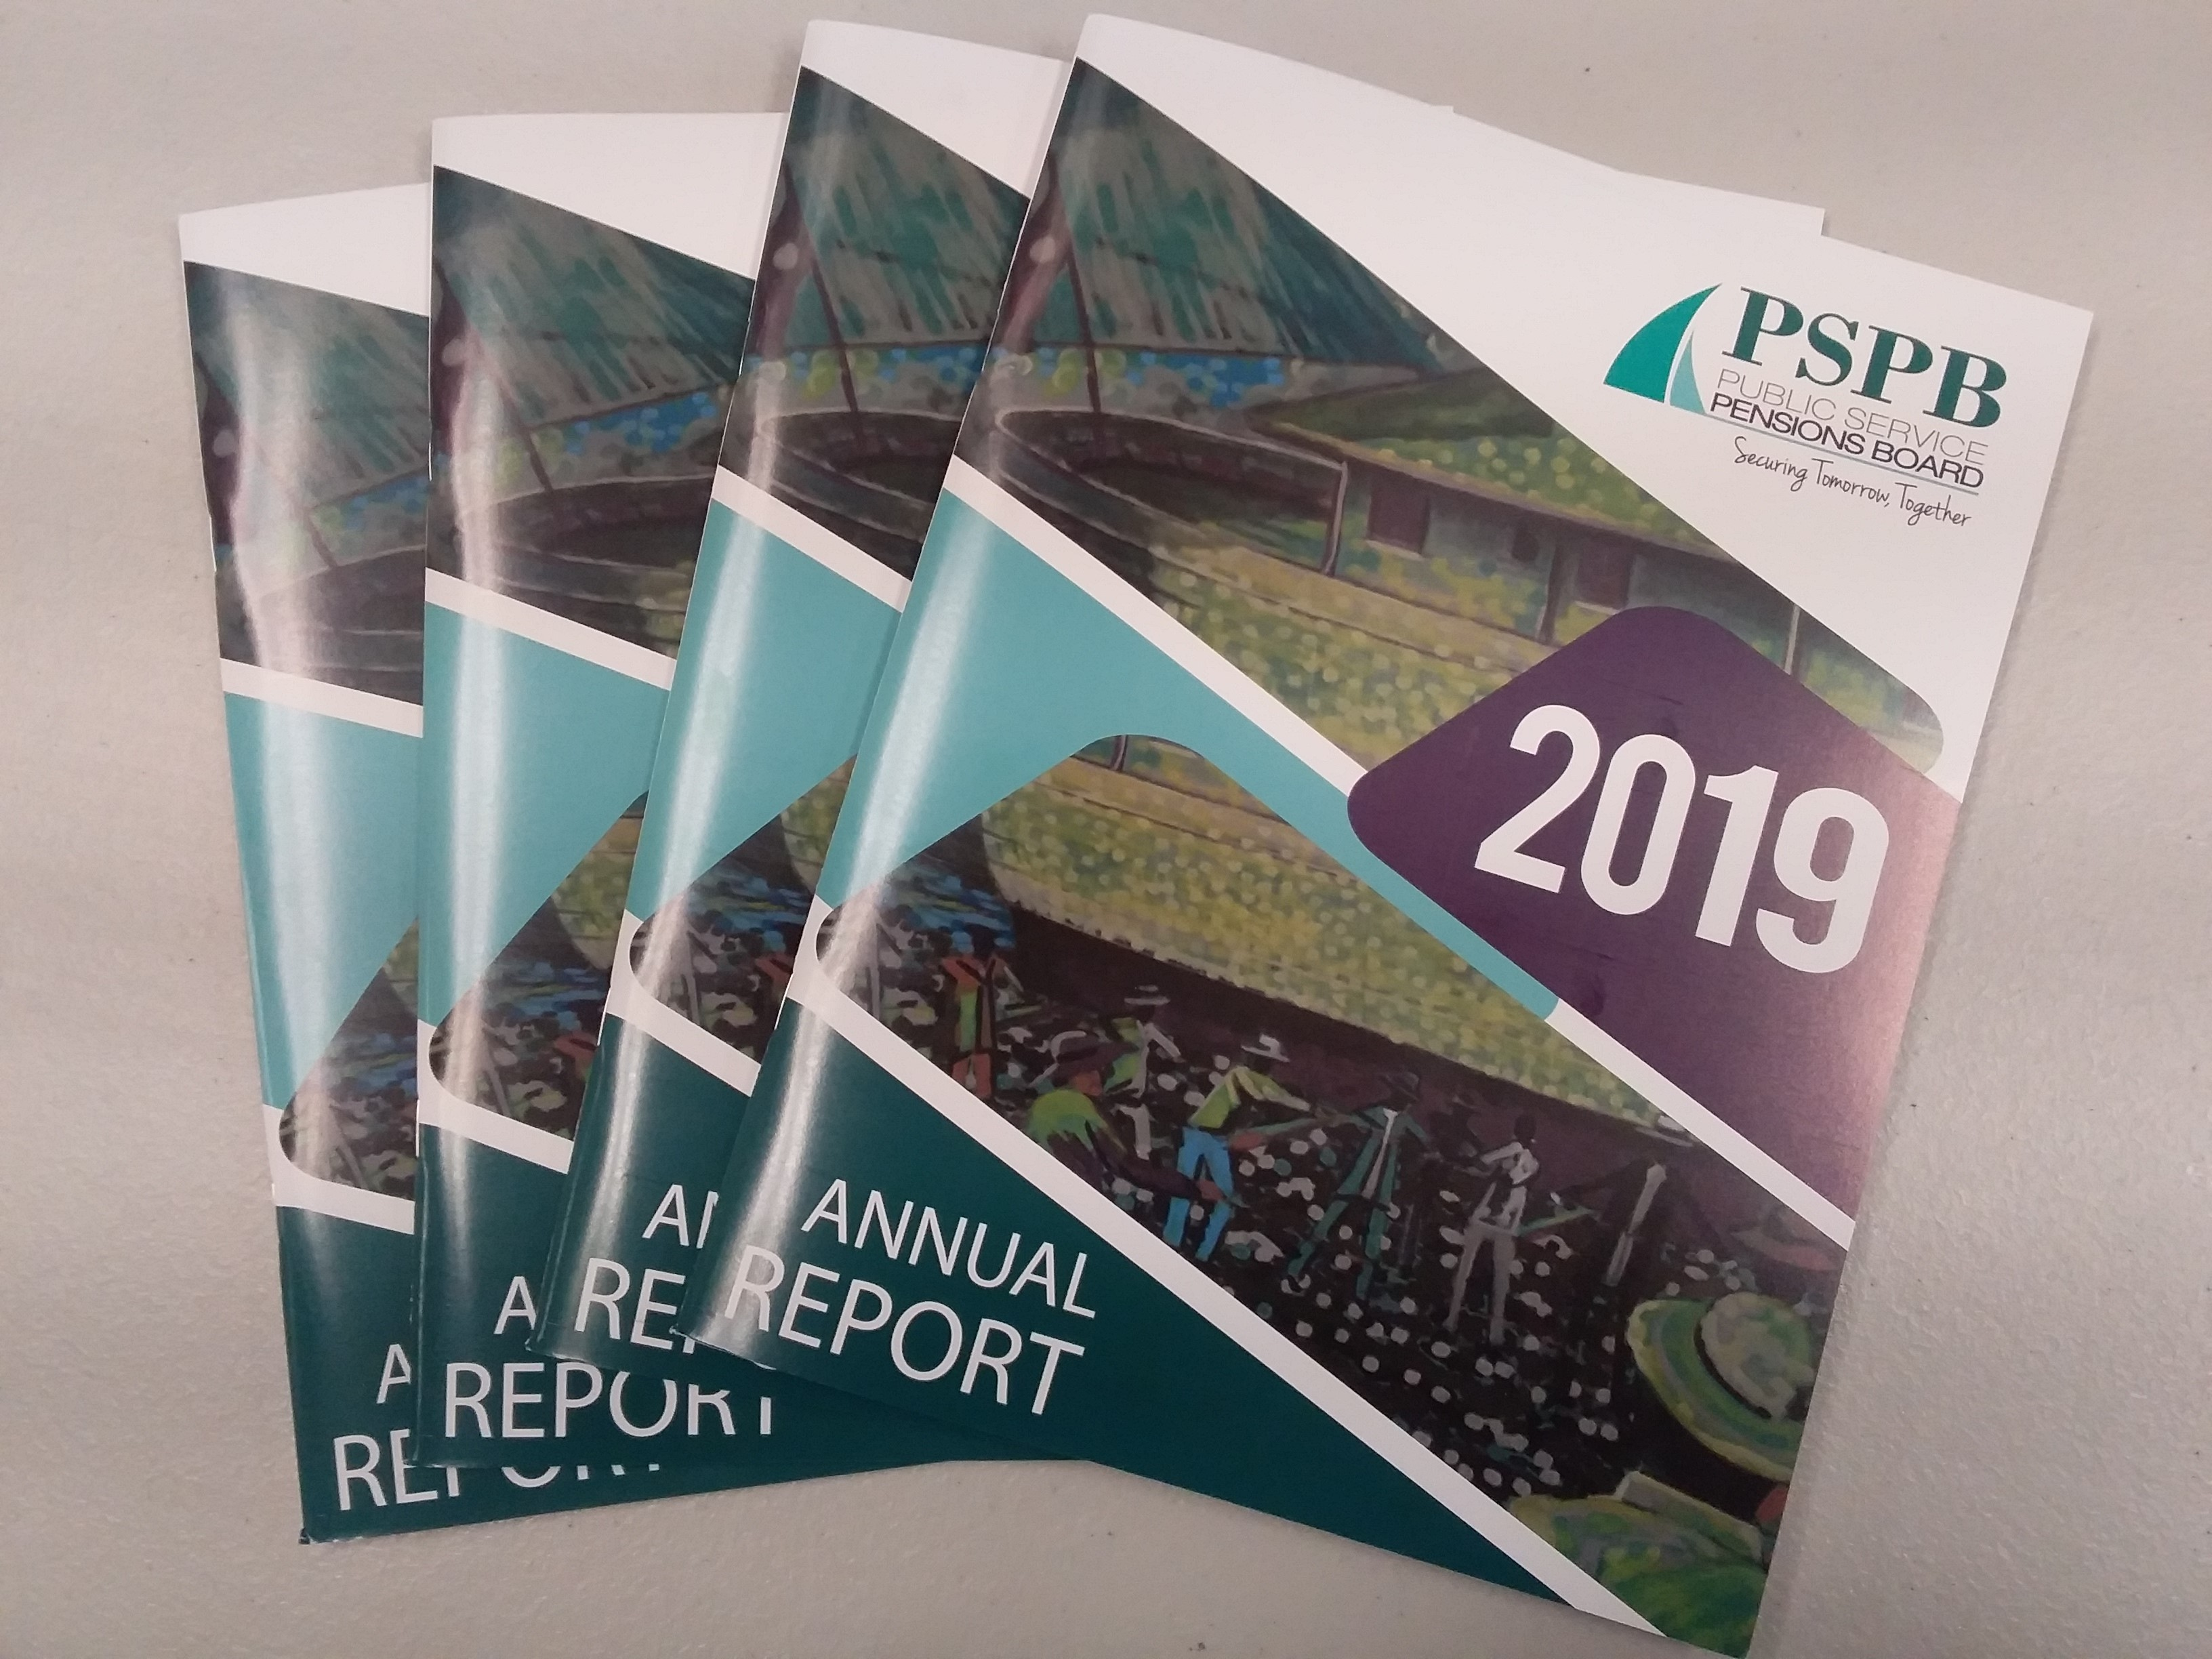 PSPB Releases 2019 Annual Report